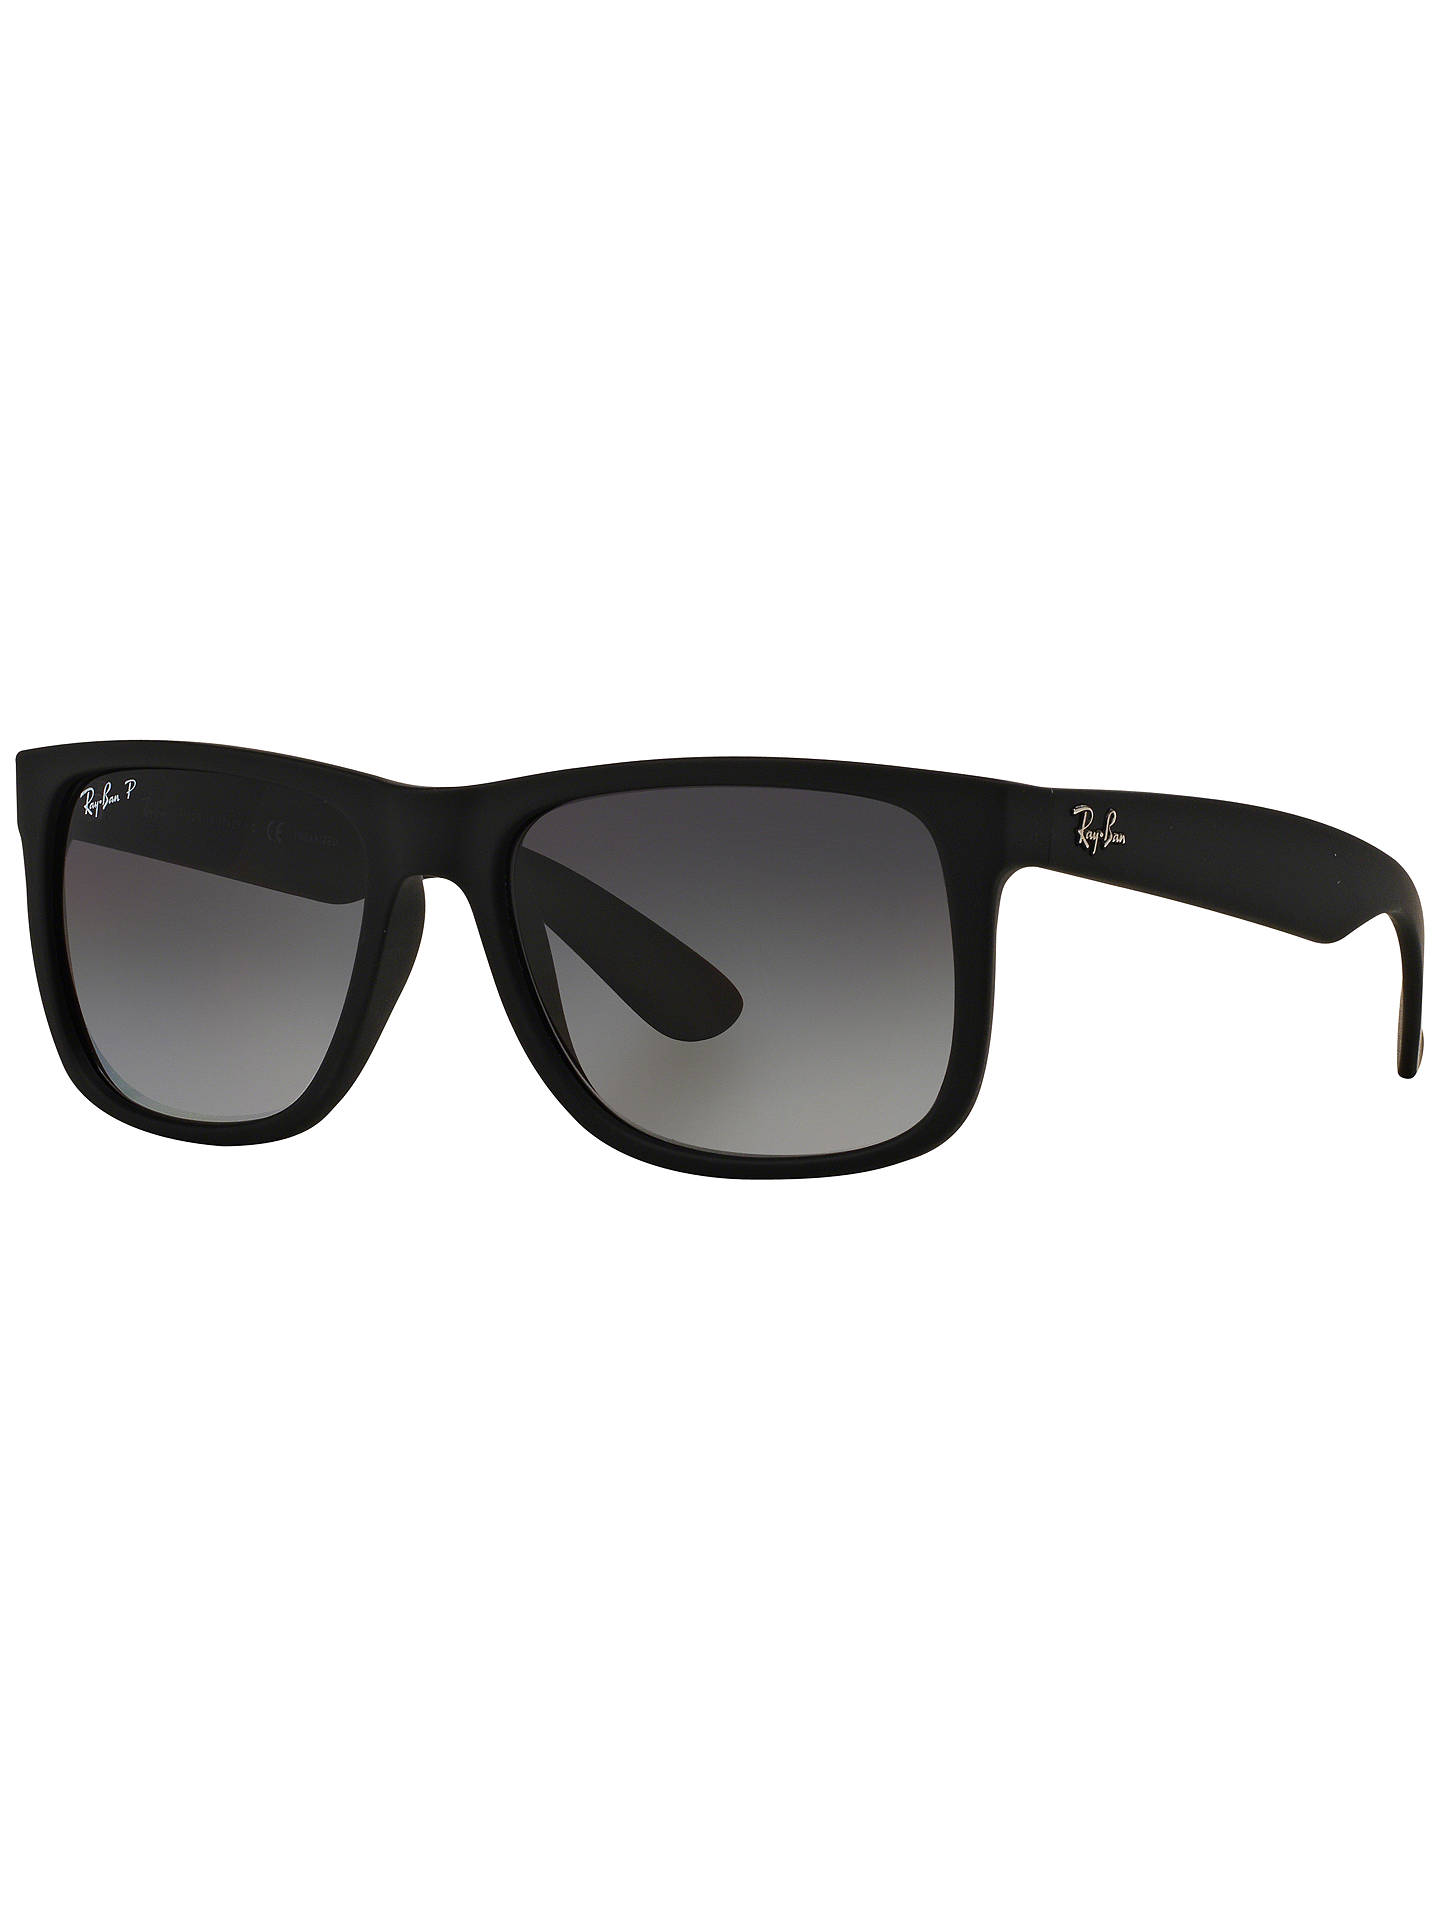 c278592b5699f Ray-Ban RB4165 Justin Polarised Wayfarer Sunglasses at John Lewis ...